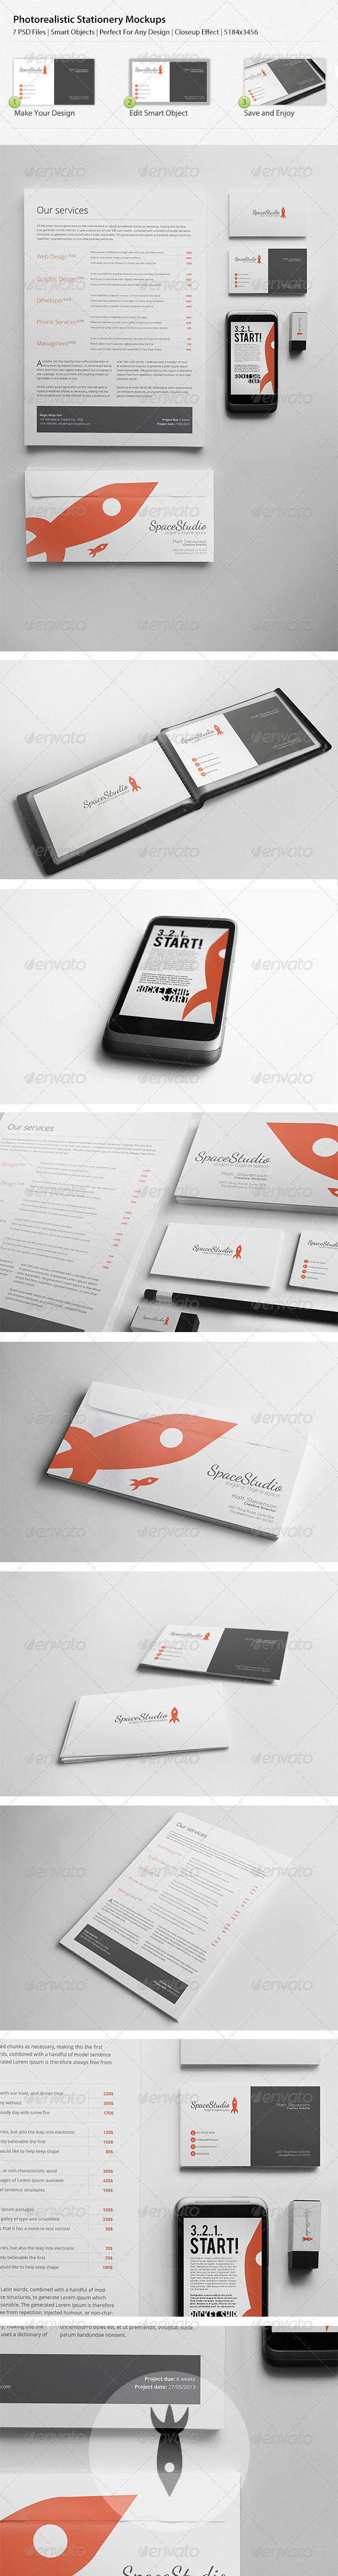 Photo Realistic Stationary/Brand Identity Mockups - Print Product Mock-Ups